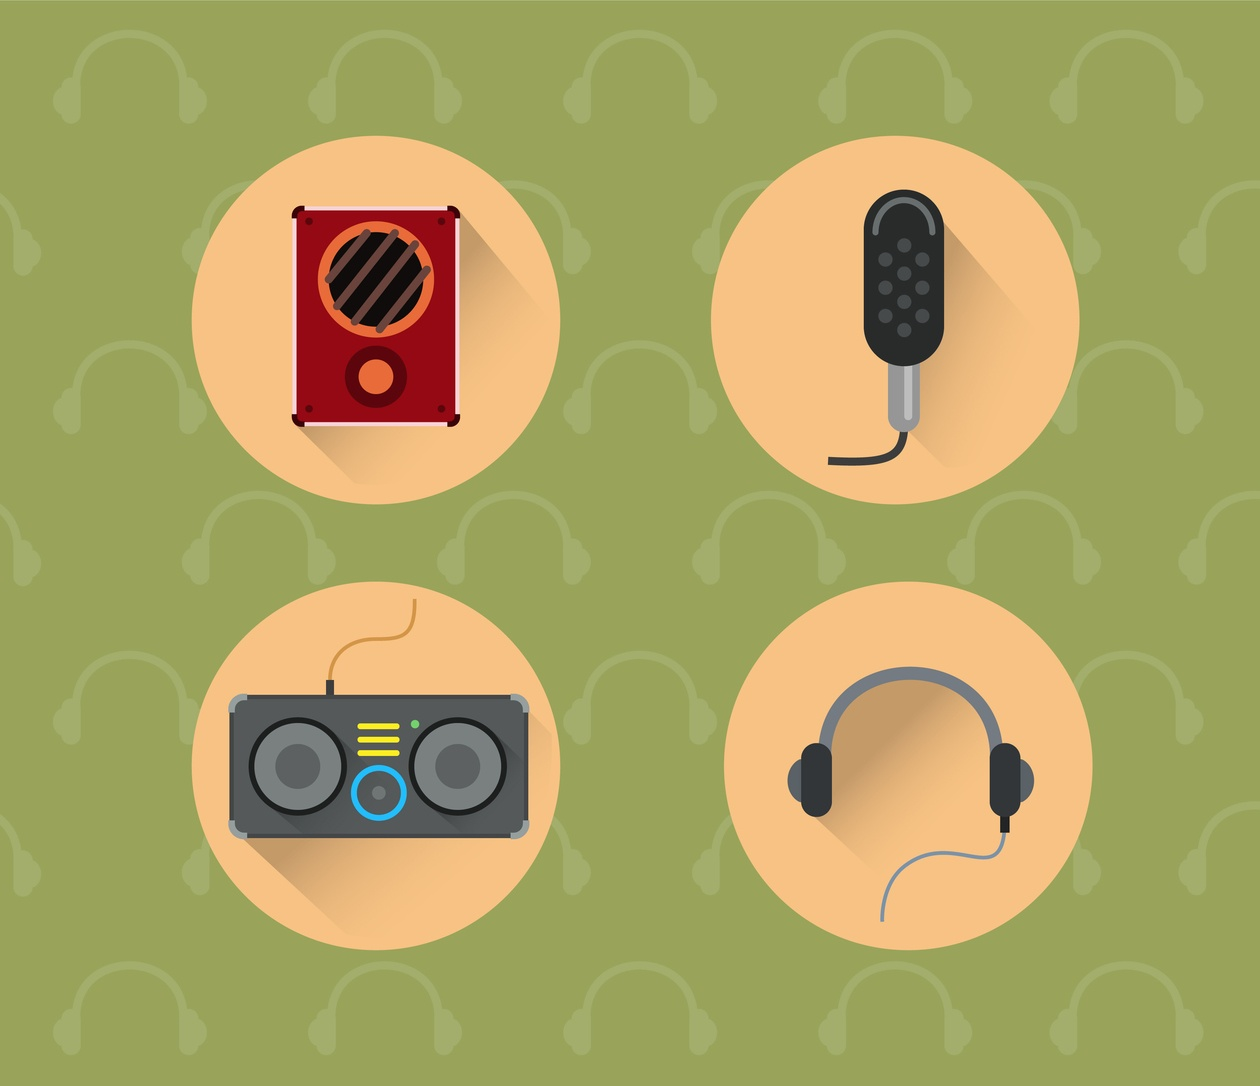 Music objects for design. Vector illustration Photoshop brush